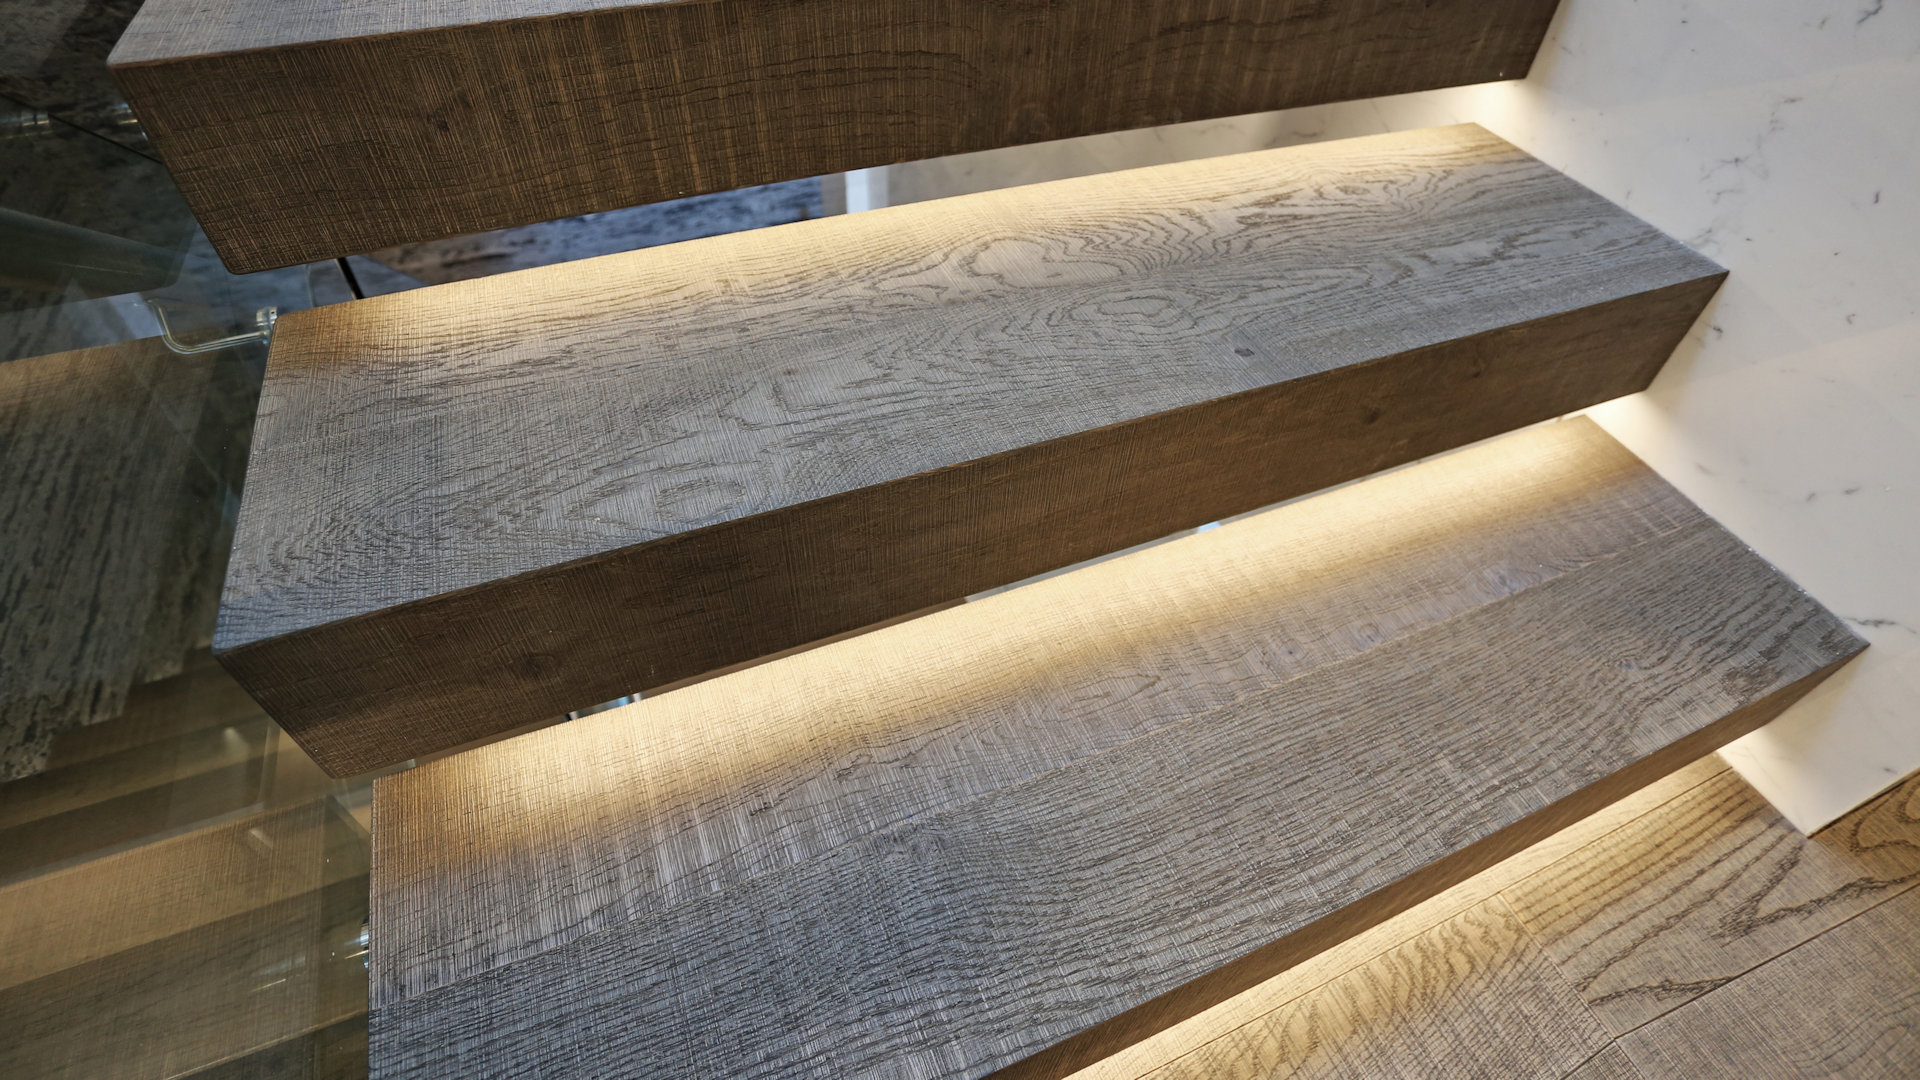 Isleview Rd, West Vancouver - Listone Giordano Floor and Staircase